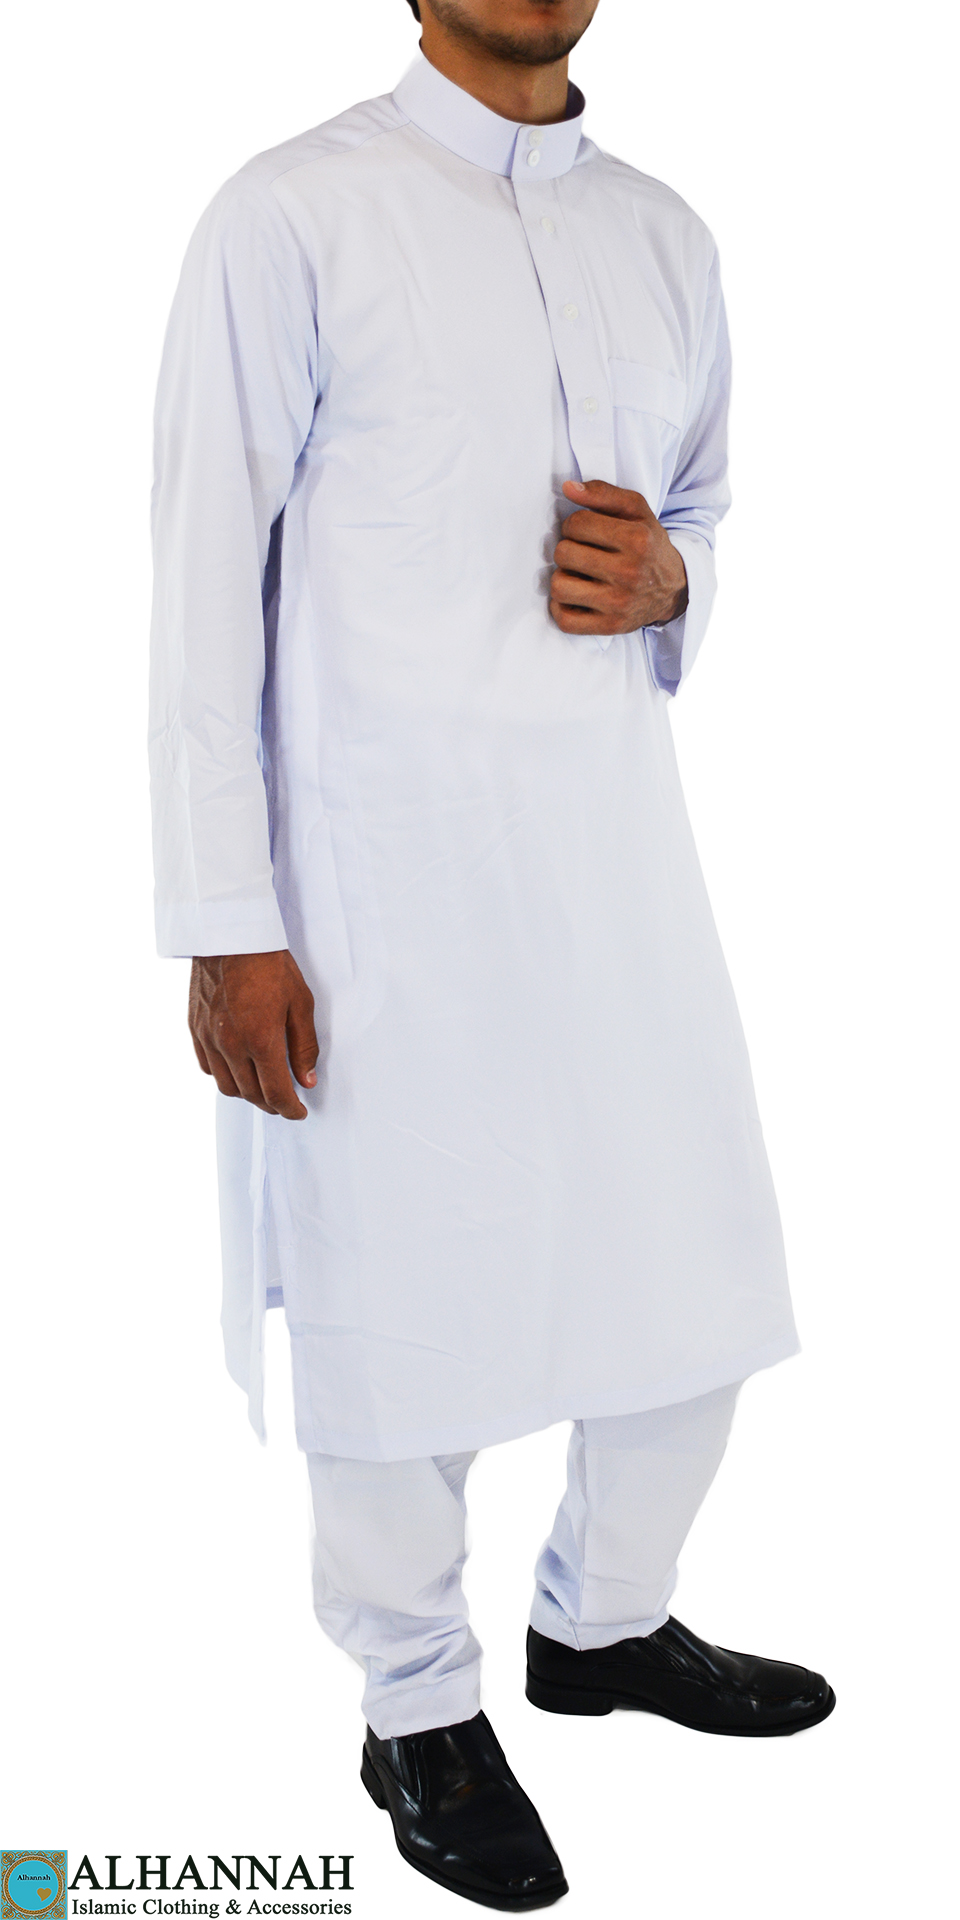 Musabi White Salwar Kameez with Button up front and Collar ME708